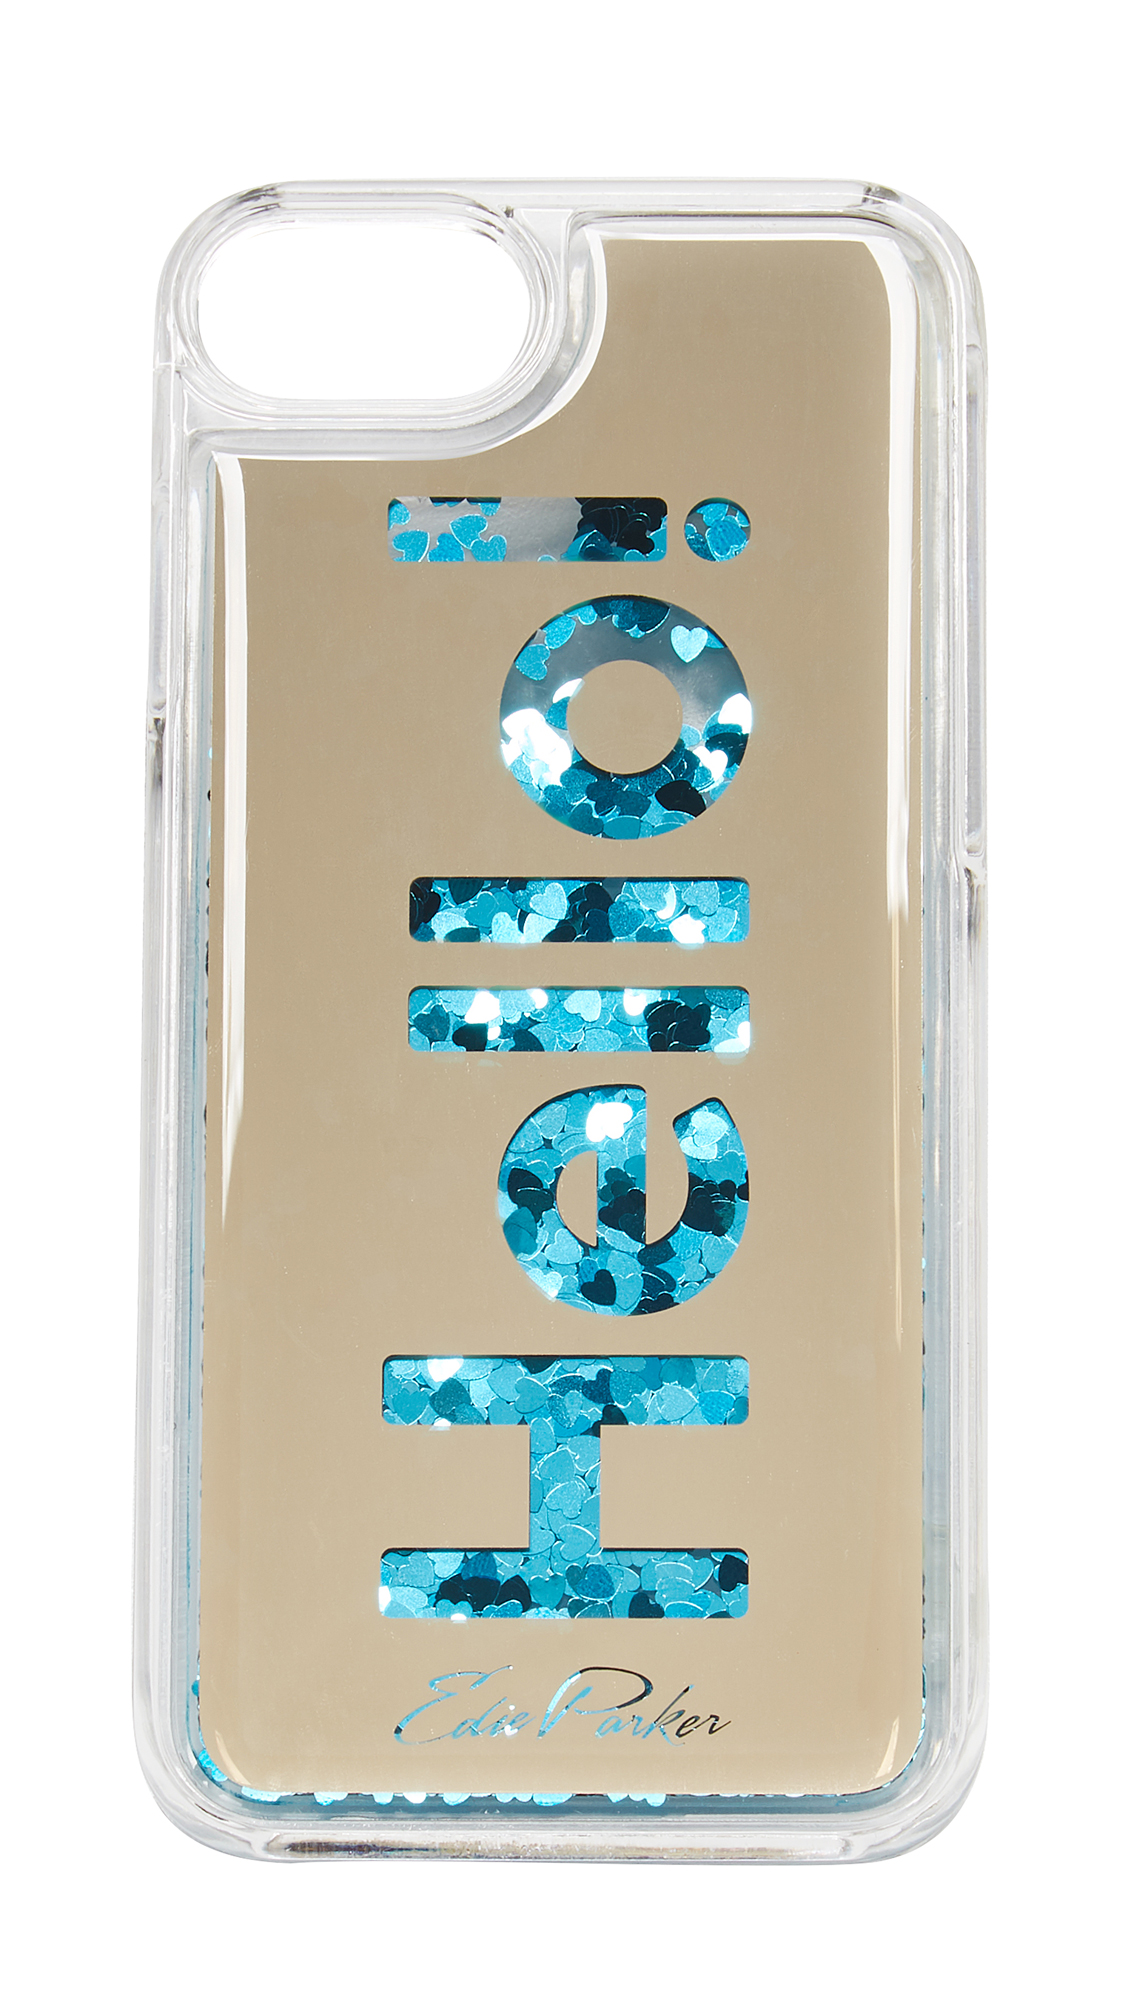 Edie Parker iPhone 6 / 6s / 7 Case Floating Hello - Gold/Blue